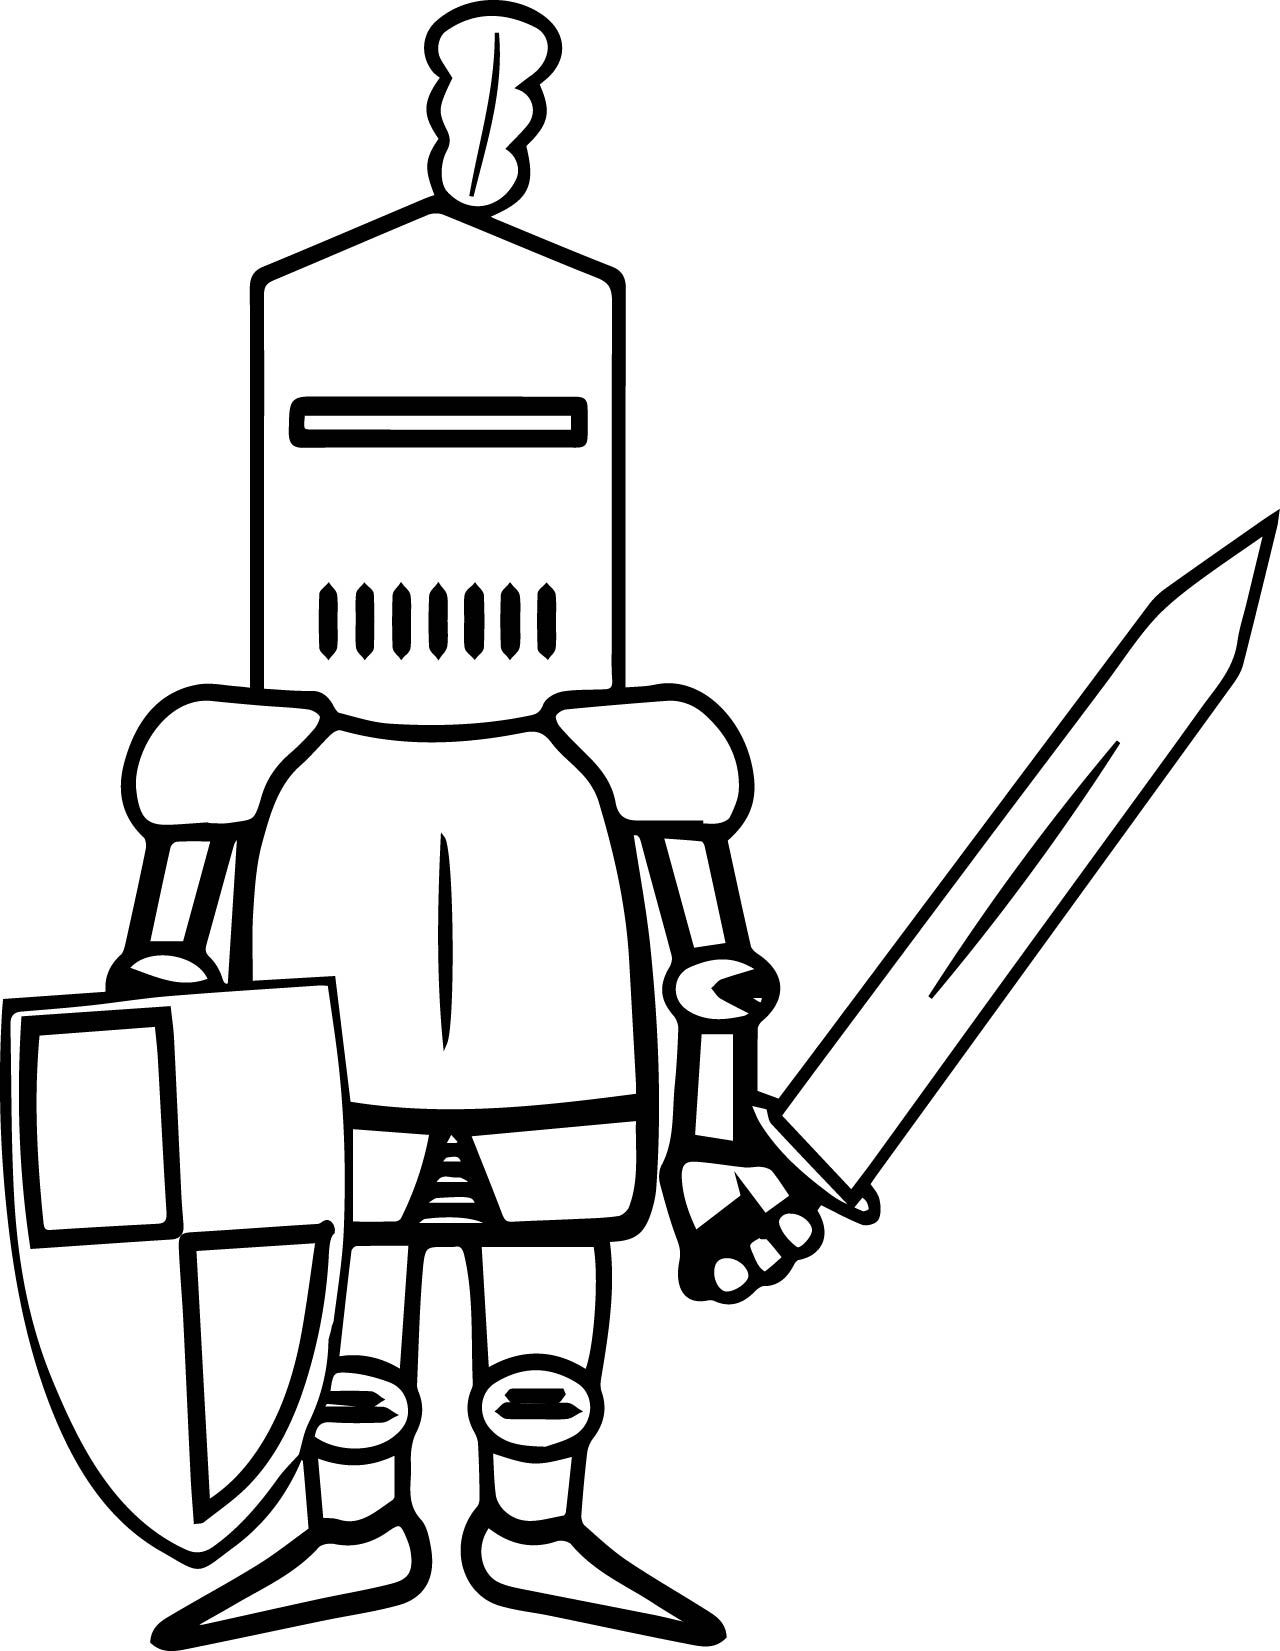 power ranger sword coloring pages power rangers coloring pages power ranger sword sword ranger coloring pages power